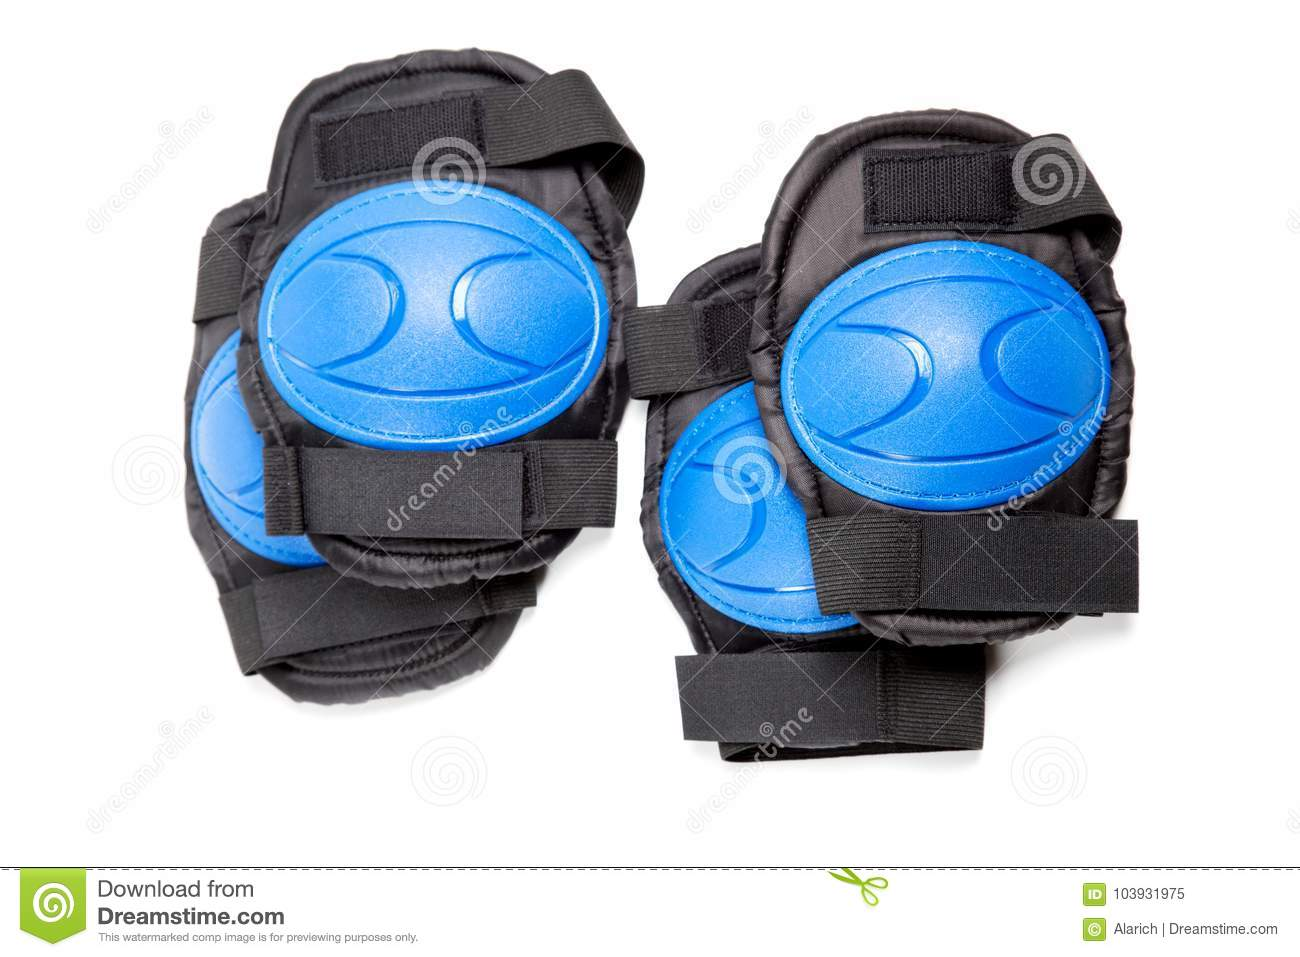 Knee pads and elbow pads